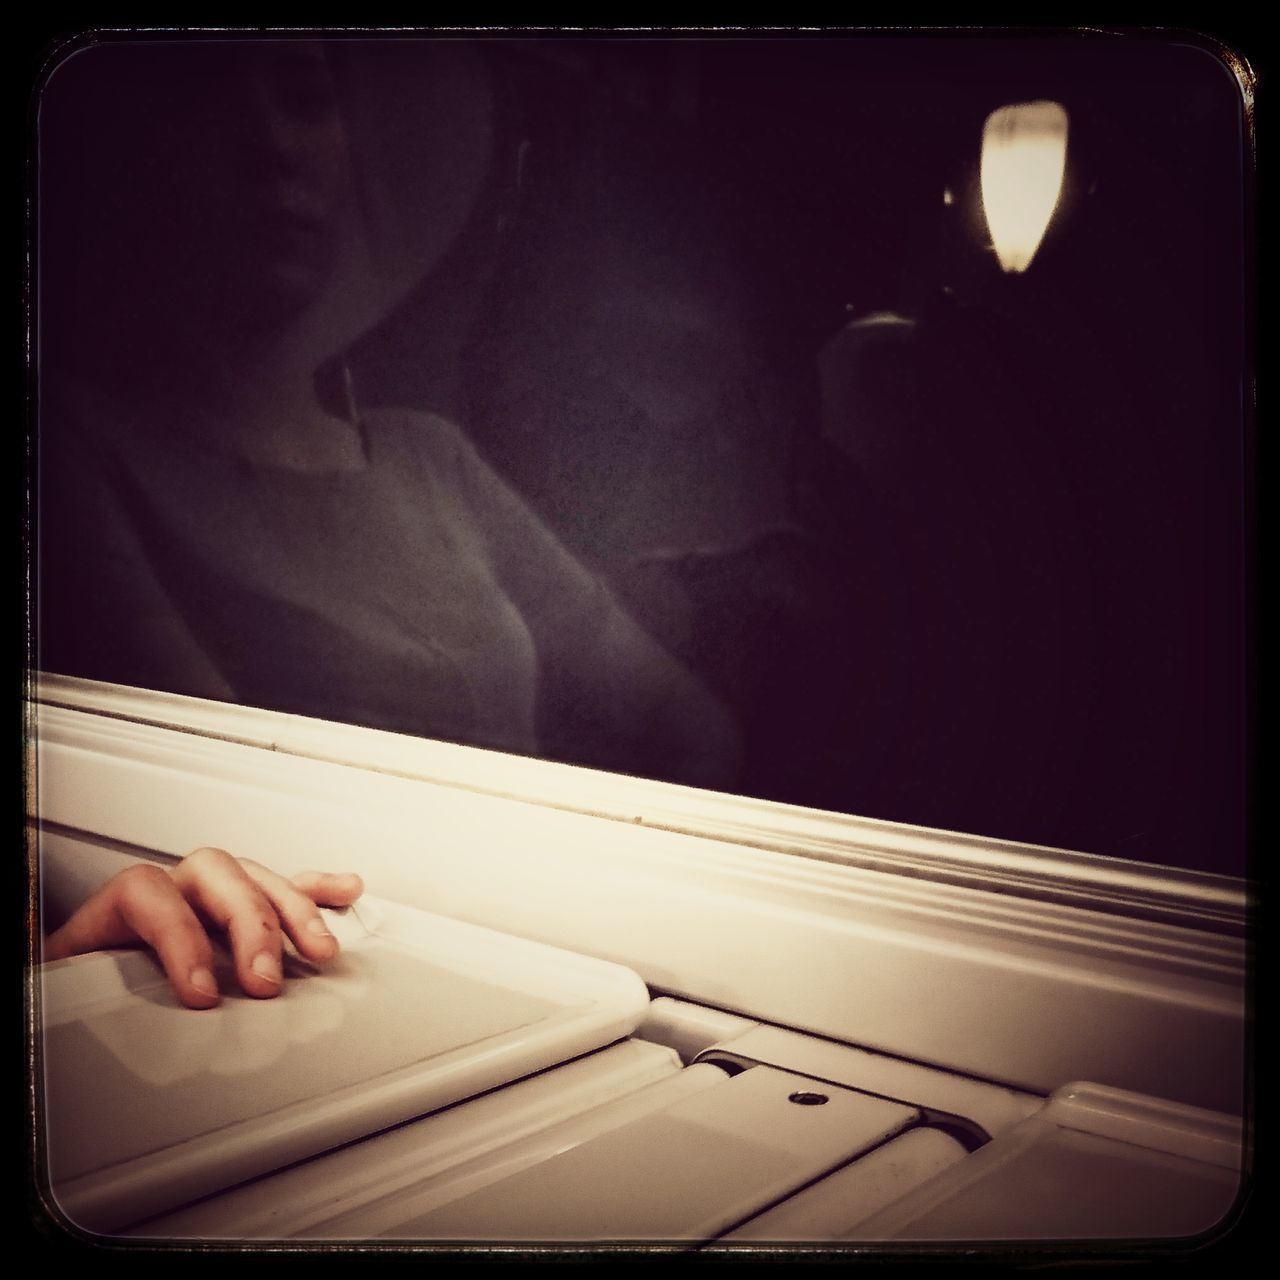 Human Body Part On The Train AMPt_community Couleur Colors Color Photography Main Human Hand